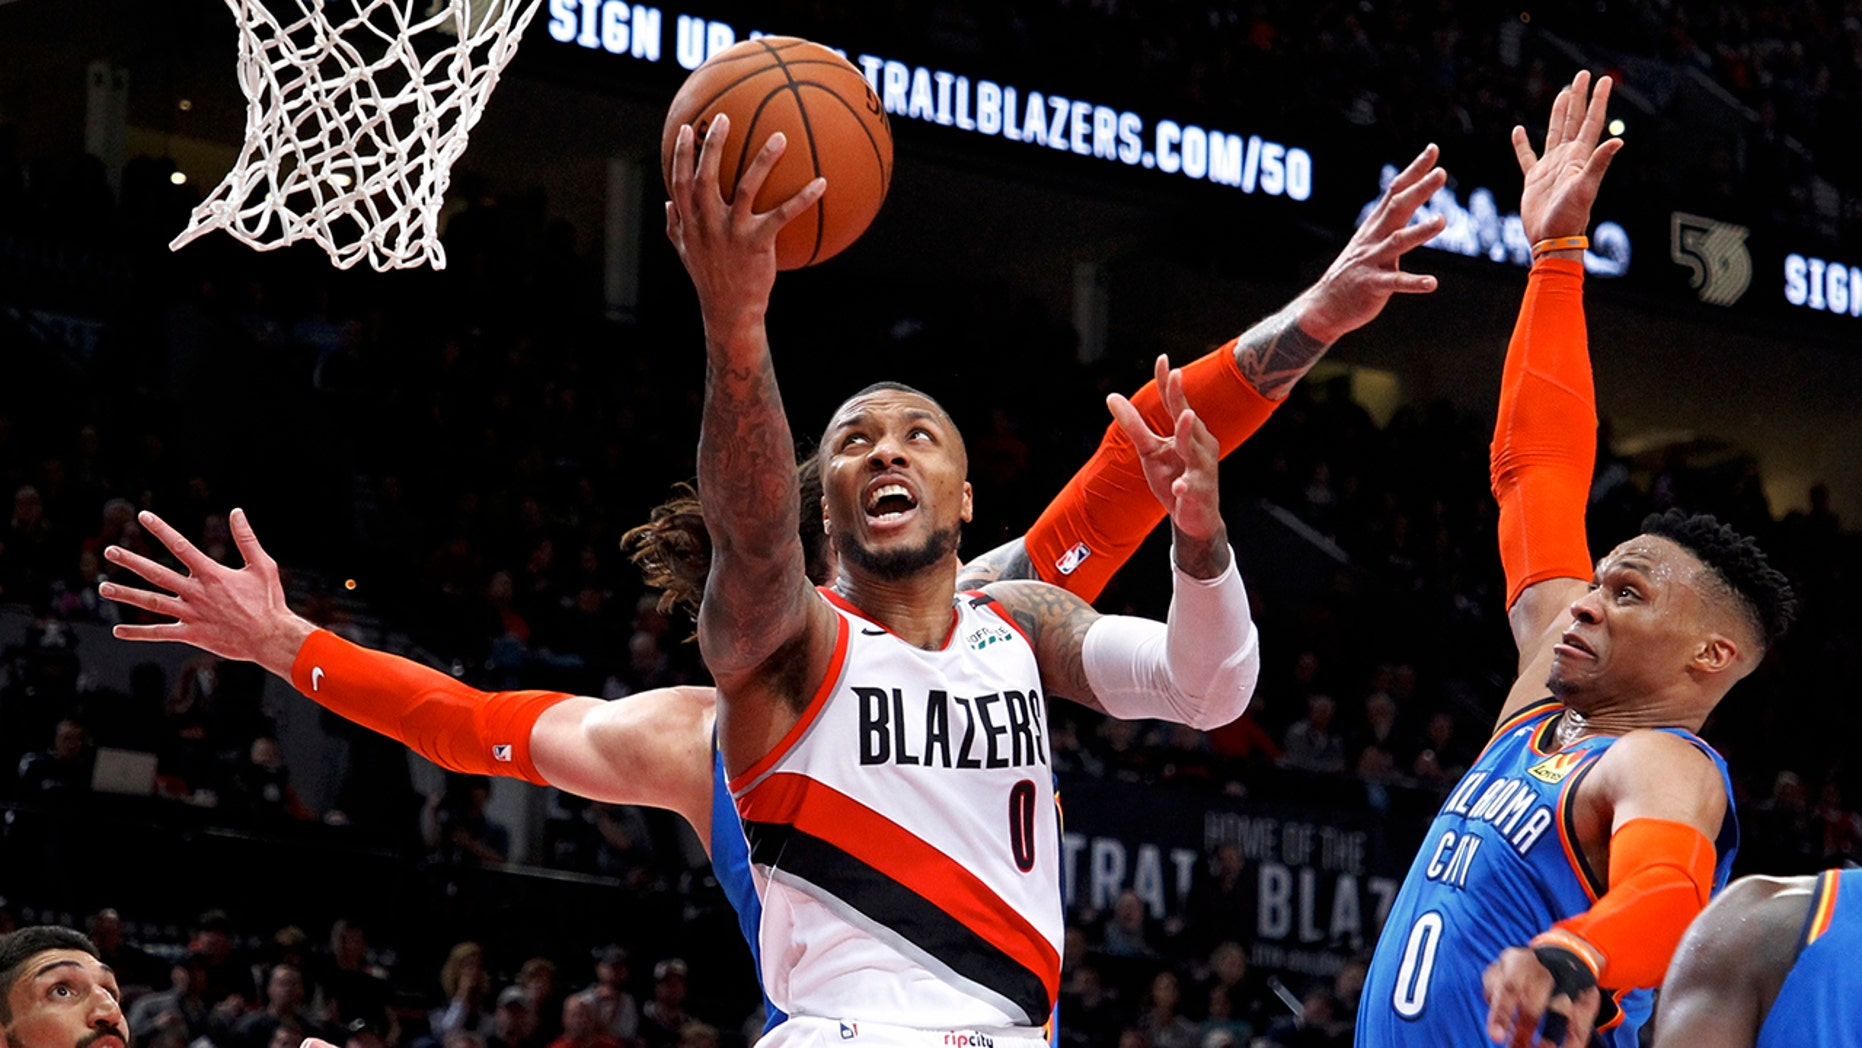 Portland Trail Blazers guard Damian Lillard, center, shoots as Oklahoma City Thunder guard Russell Westbrook, right, defends during the second half of Game 1 of a first-round NBA basketball playoff series in Portland, Ore., Sunday, April 14, 2019. (AP Photo/Steve Dipaola)